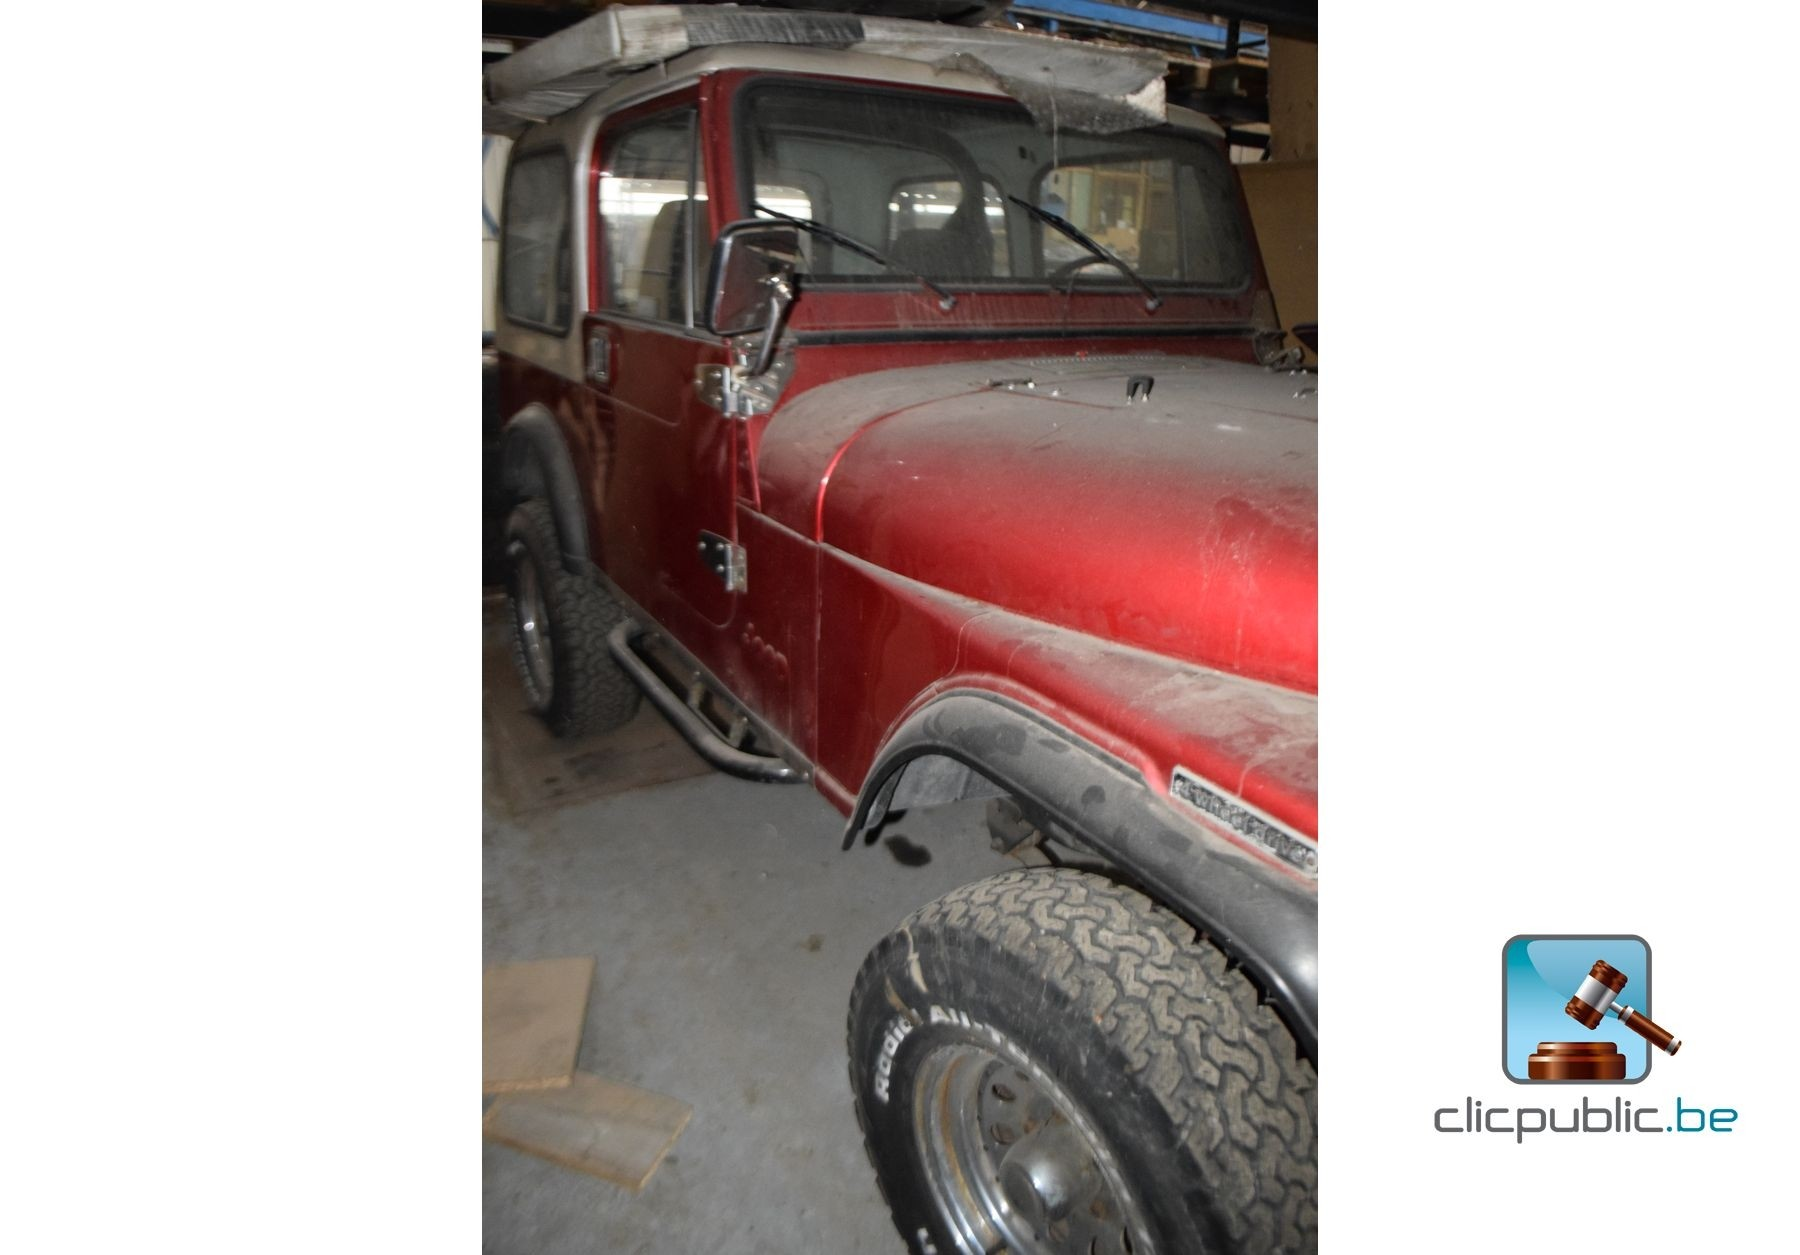 jeep cj7 clic with Wagen Jeep Cj7 Ref 79 12066 on Jeep Cj7 Wrangler in addition 12 Volt Wiring For Dummies further Cj2a Wiring Diagram 12 Volt besides Cleaning Rusty Suspension Parts likewise Thyristor Ac Motor Control Circuit.